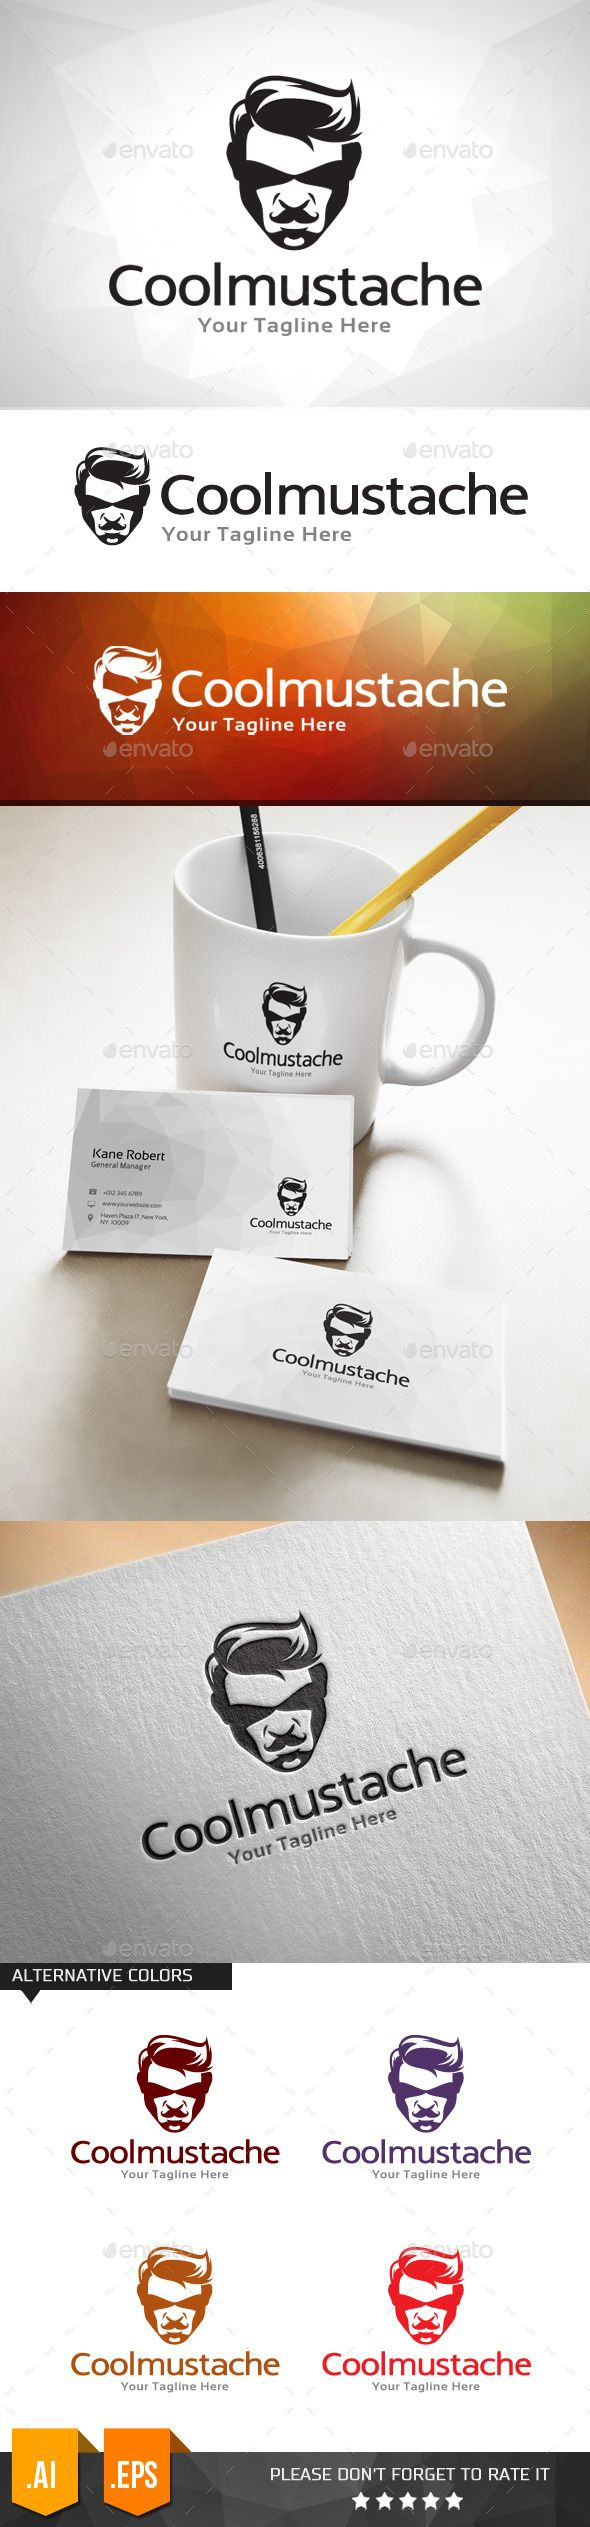 Cool Mustache	 Logo Design Template Vector #logotype Download it here: http://graphicriver.net/item/cool-mustache-logo-template/11031659?s_rank=832?ref=nexion